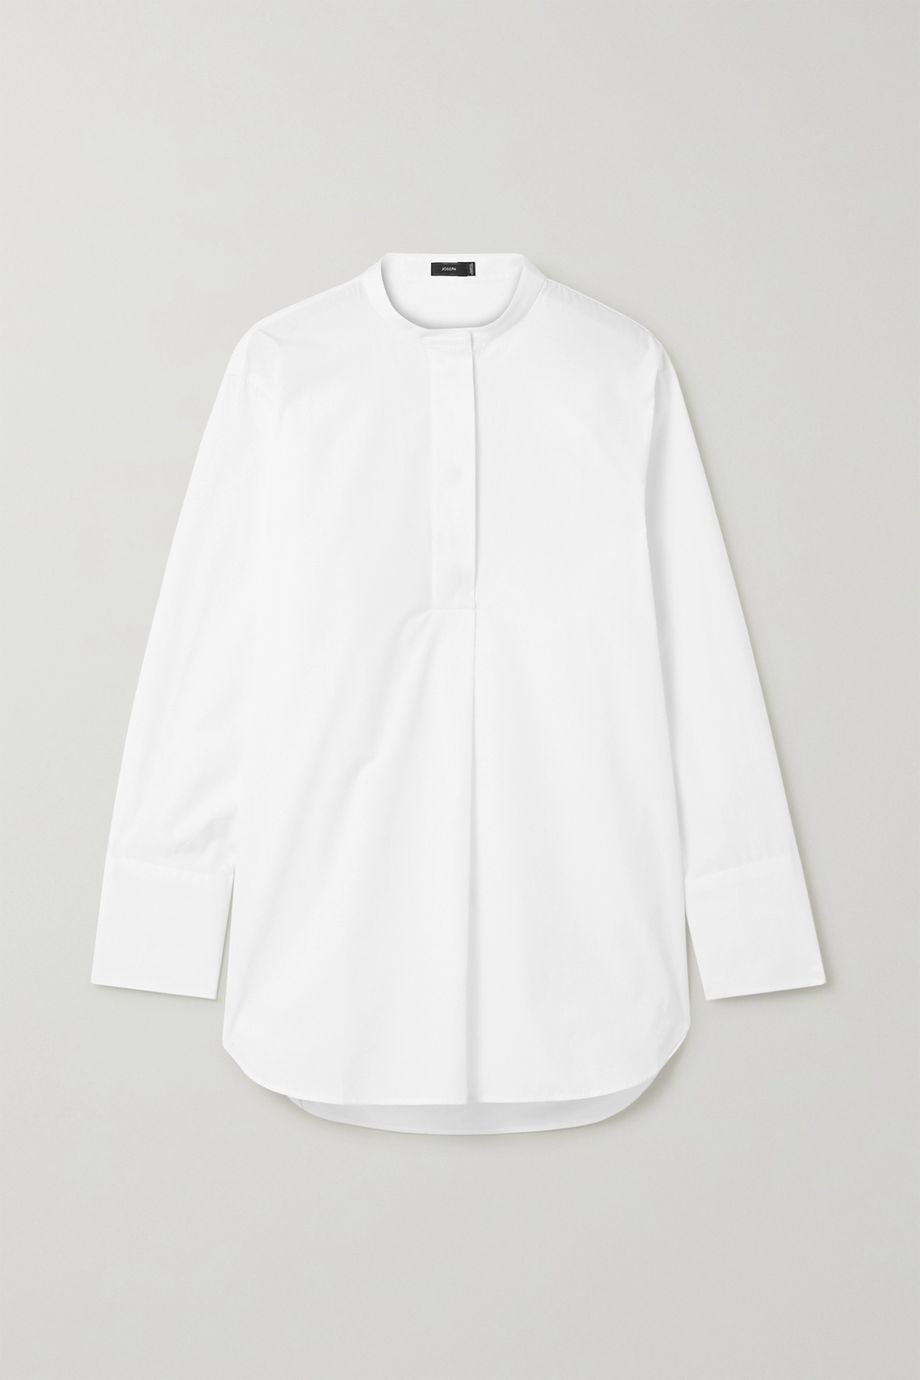 Joseph Aufray cotton-poplin shirt